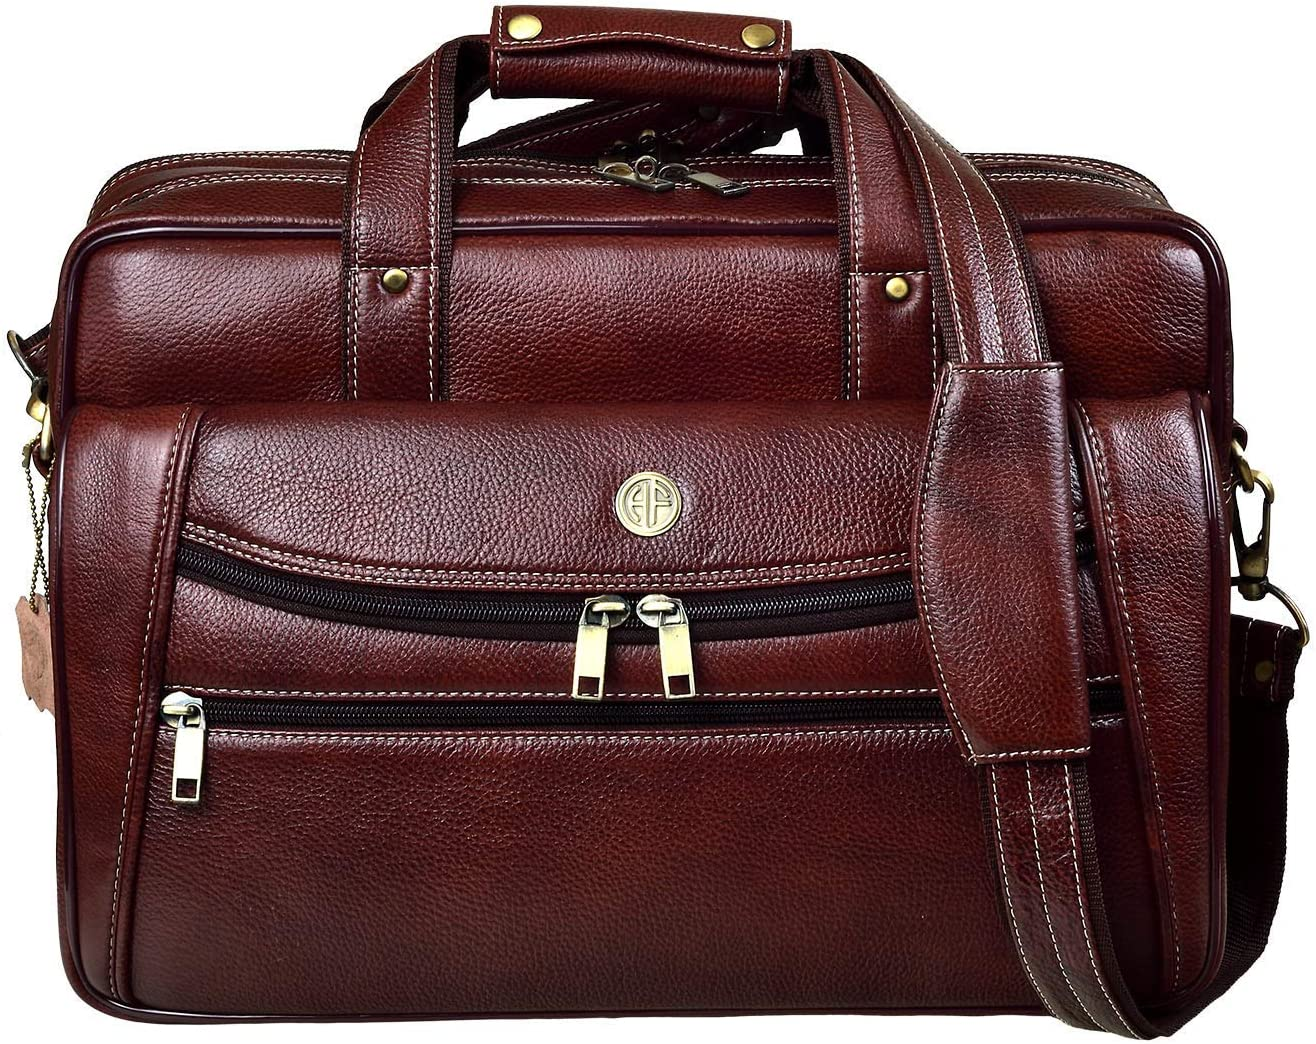 Rang Resha Bombay Brown Leather 15.6 inch Laptop Messenger Bag (L=39,B=9, H=27 cm) LB166